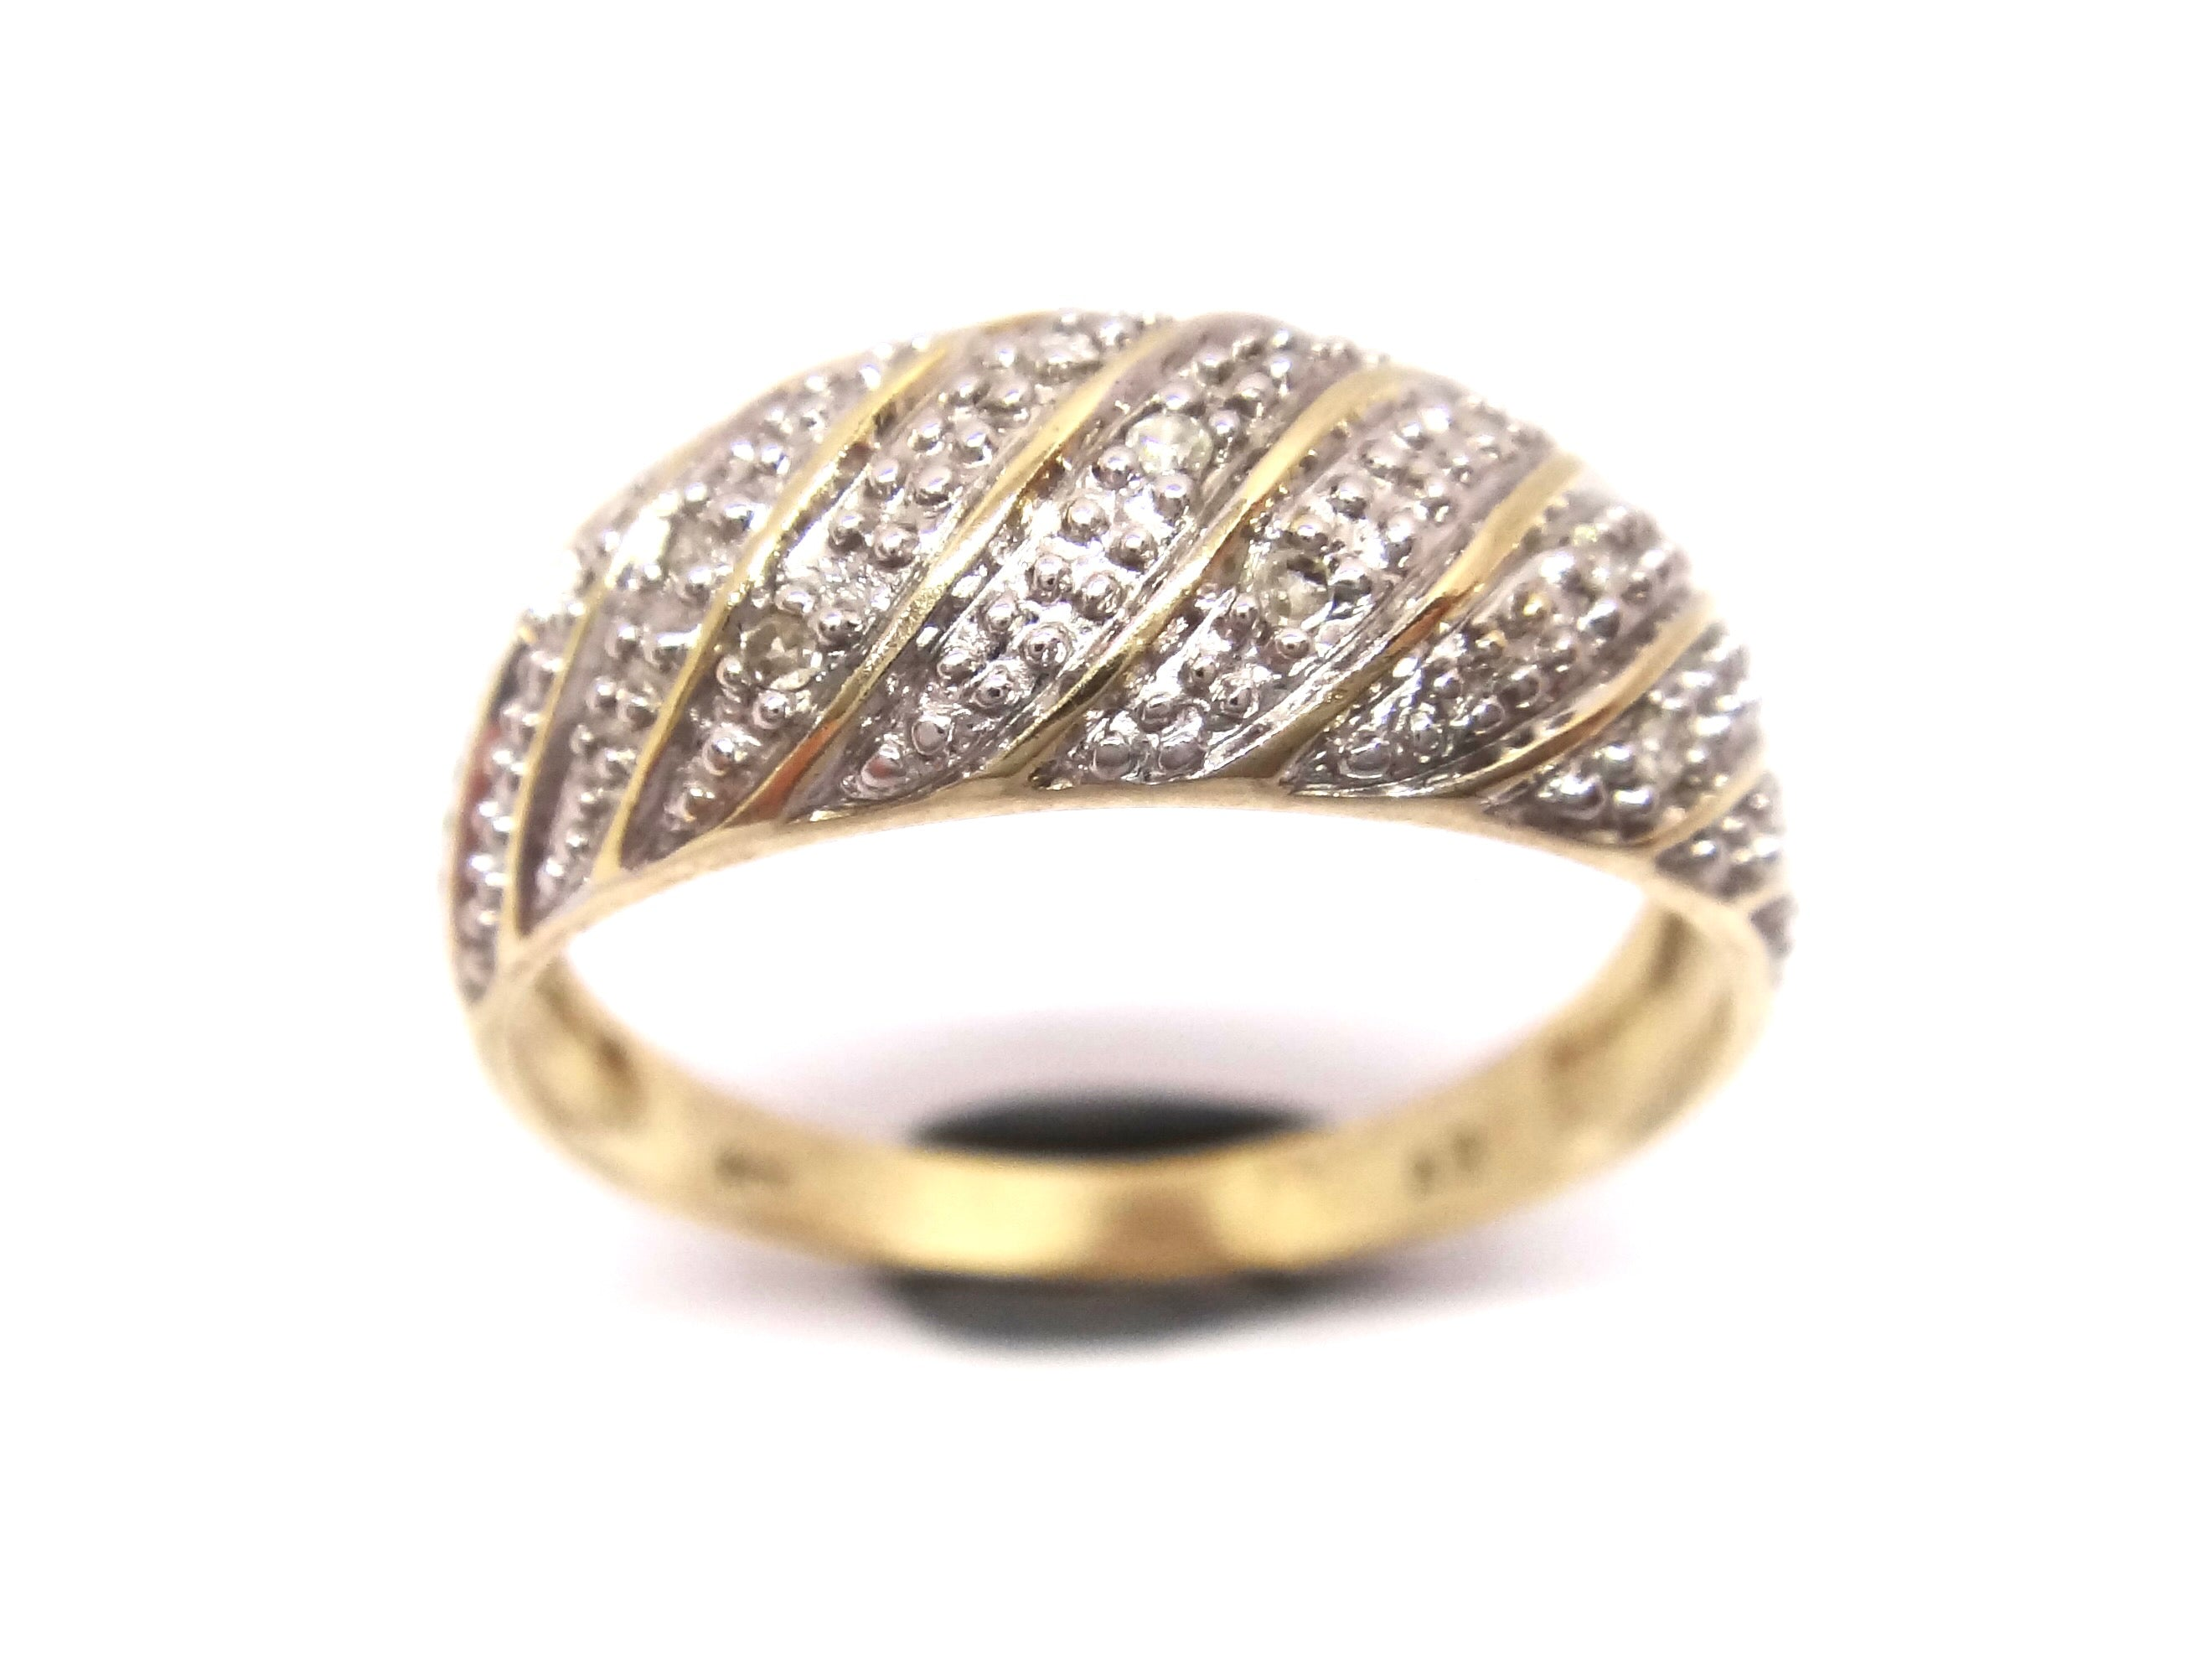 9CT Yellow GOLD & Diamond Dome Ring